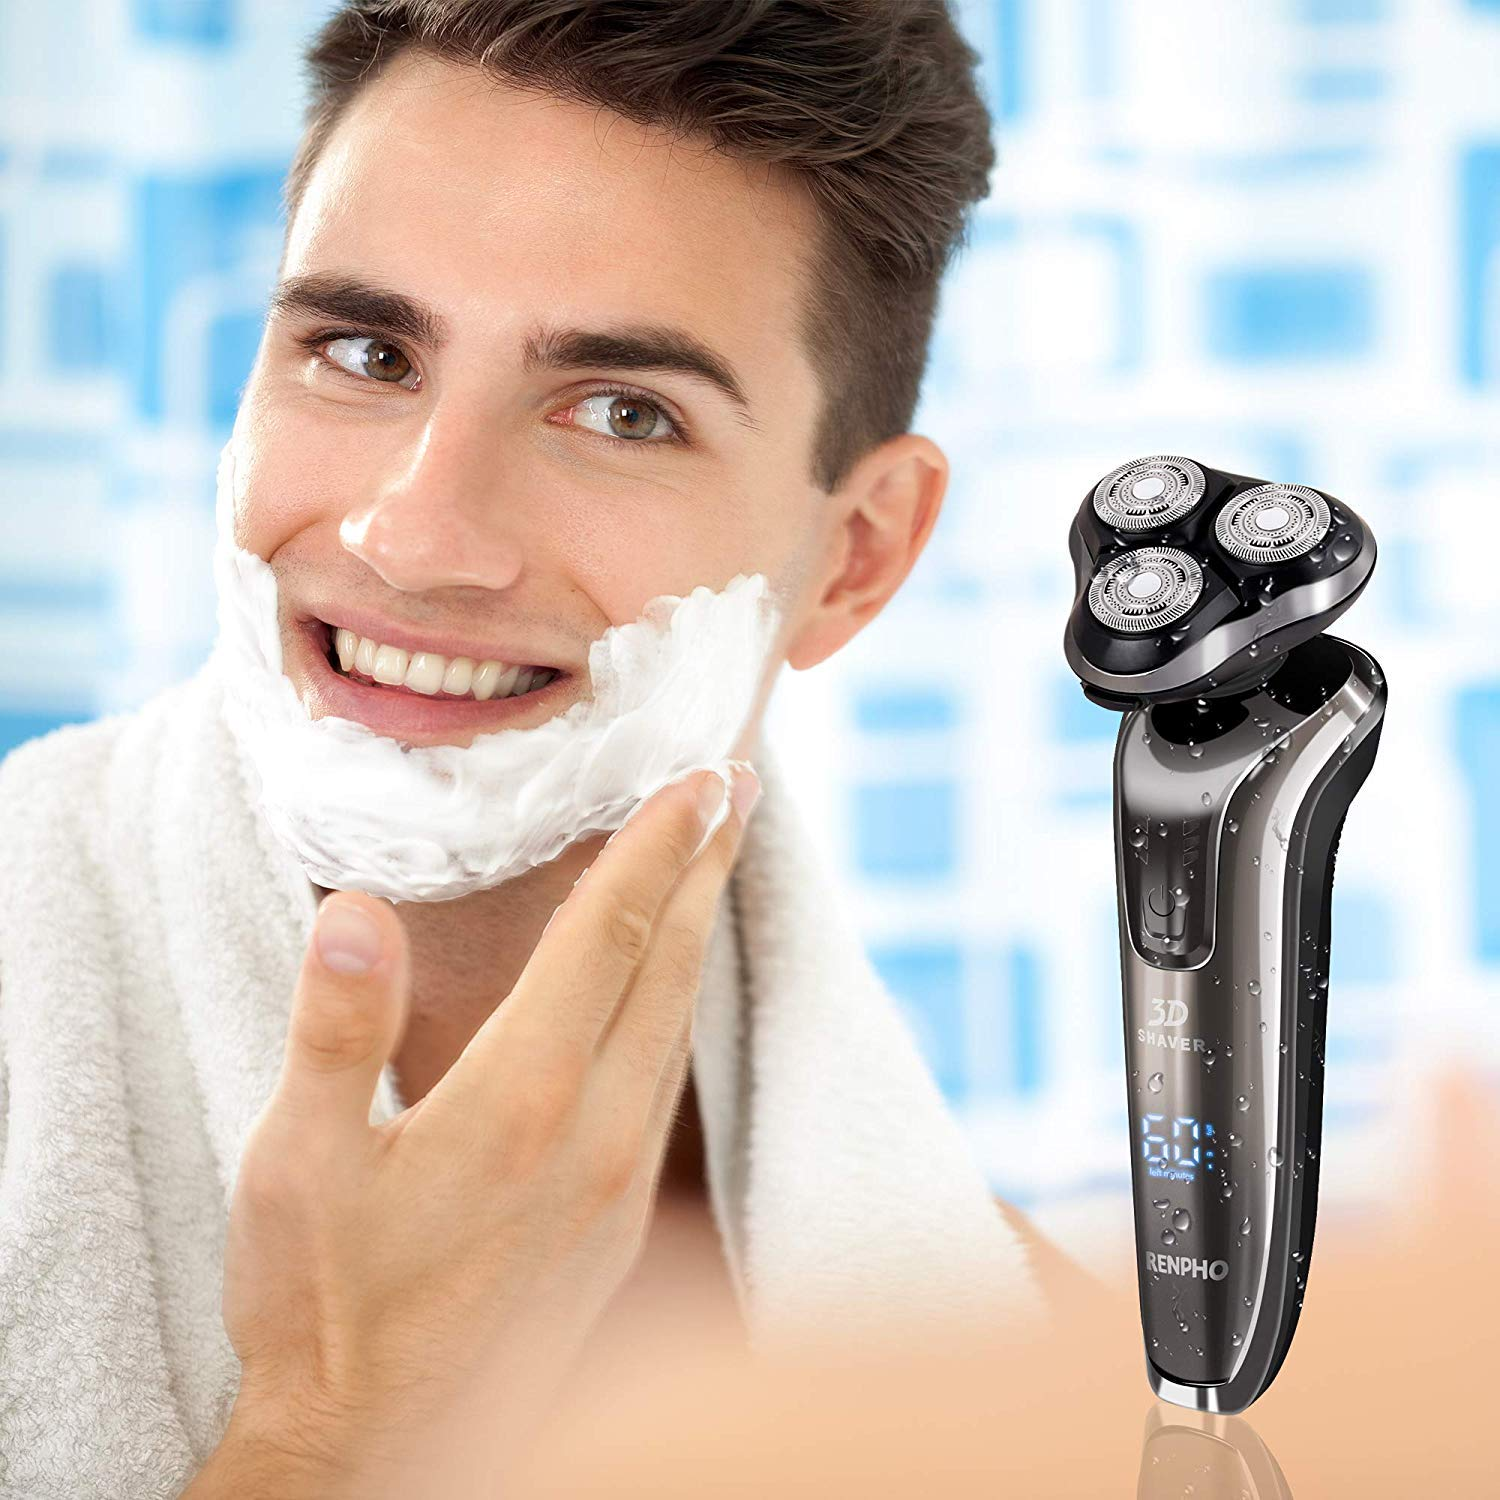 RENPHO Electric Shaver Rotary Razor for Men, Wet & Dry Mens Electric Razors Cordless Beard Trimmer Beard Trimmer Sideburn Trimmer 2 in 1 Shaver USB Rechargeable Waterproof